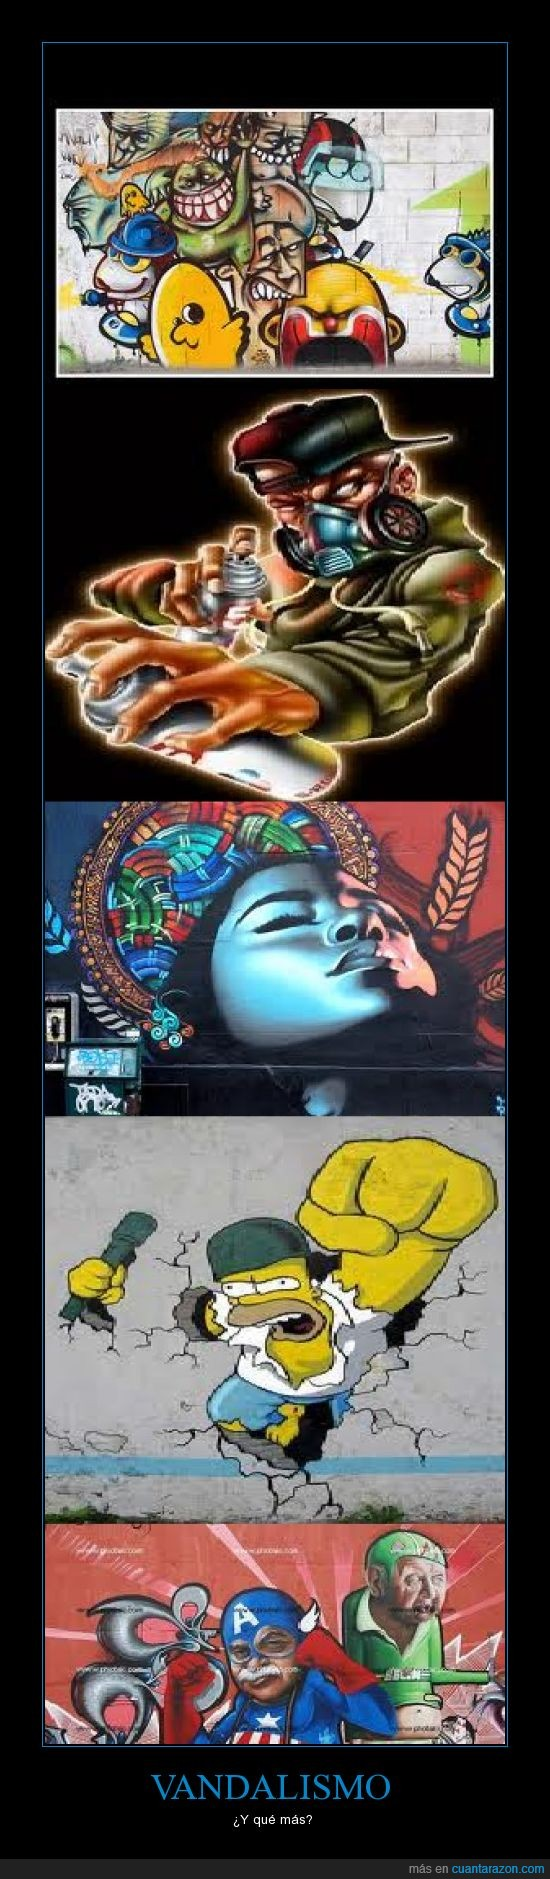 ARTE,capitan,graffitis,homer,pared,pintada,vandalismo